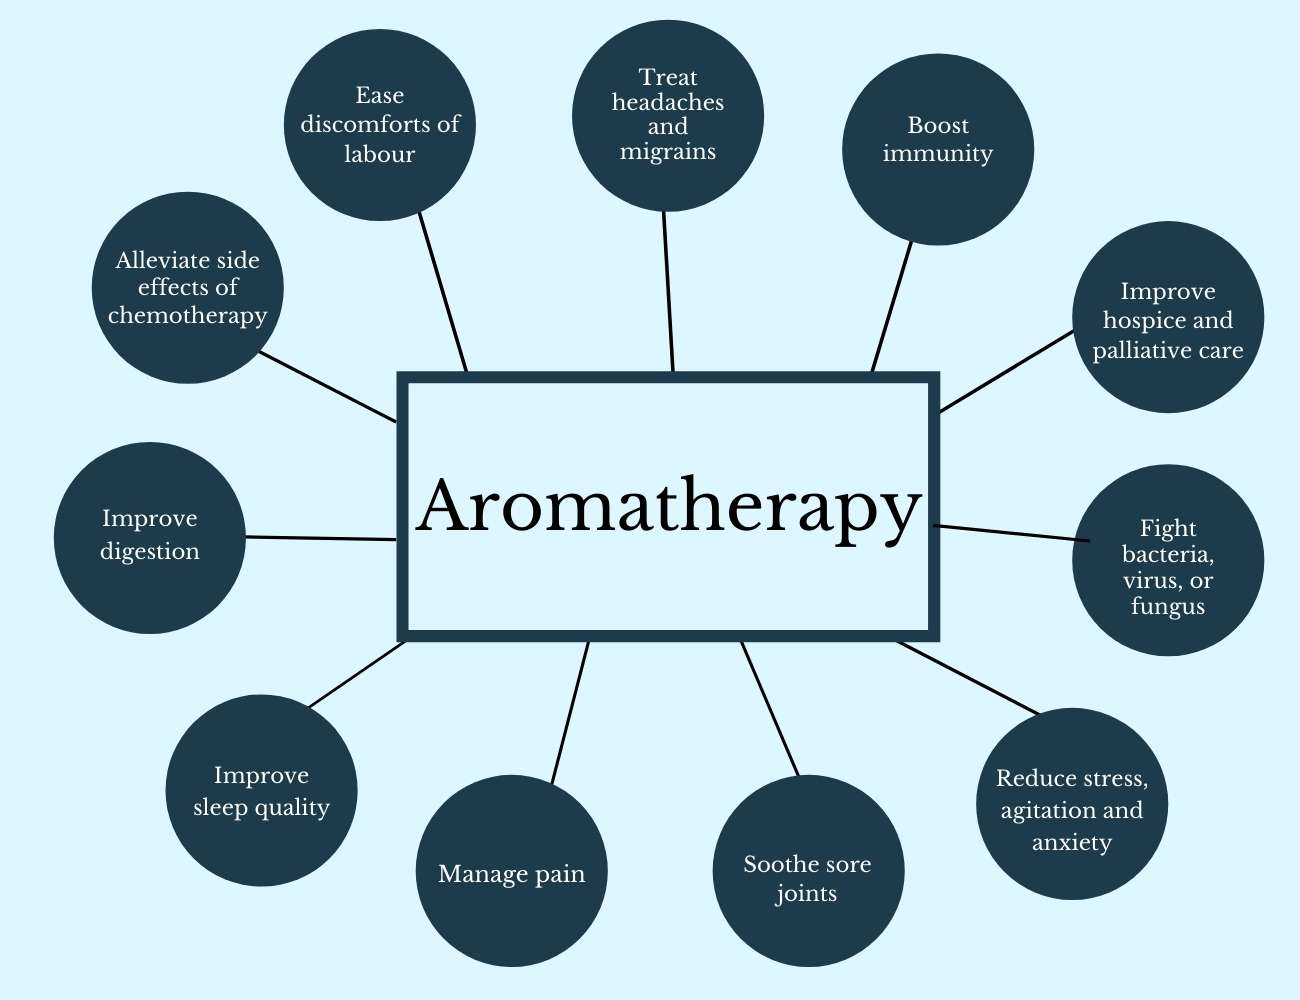 This image shows us the benefits of Aromatherapy.